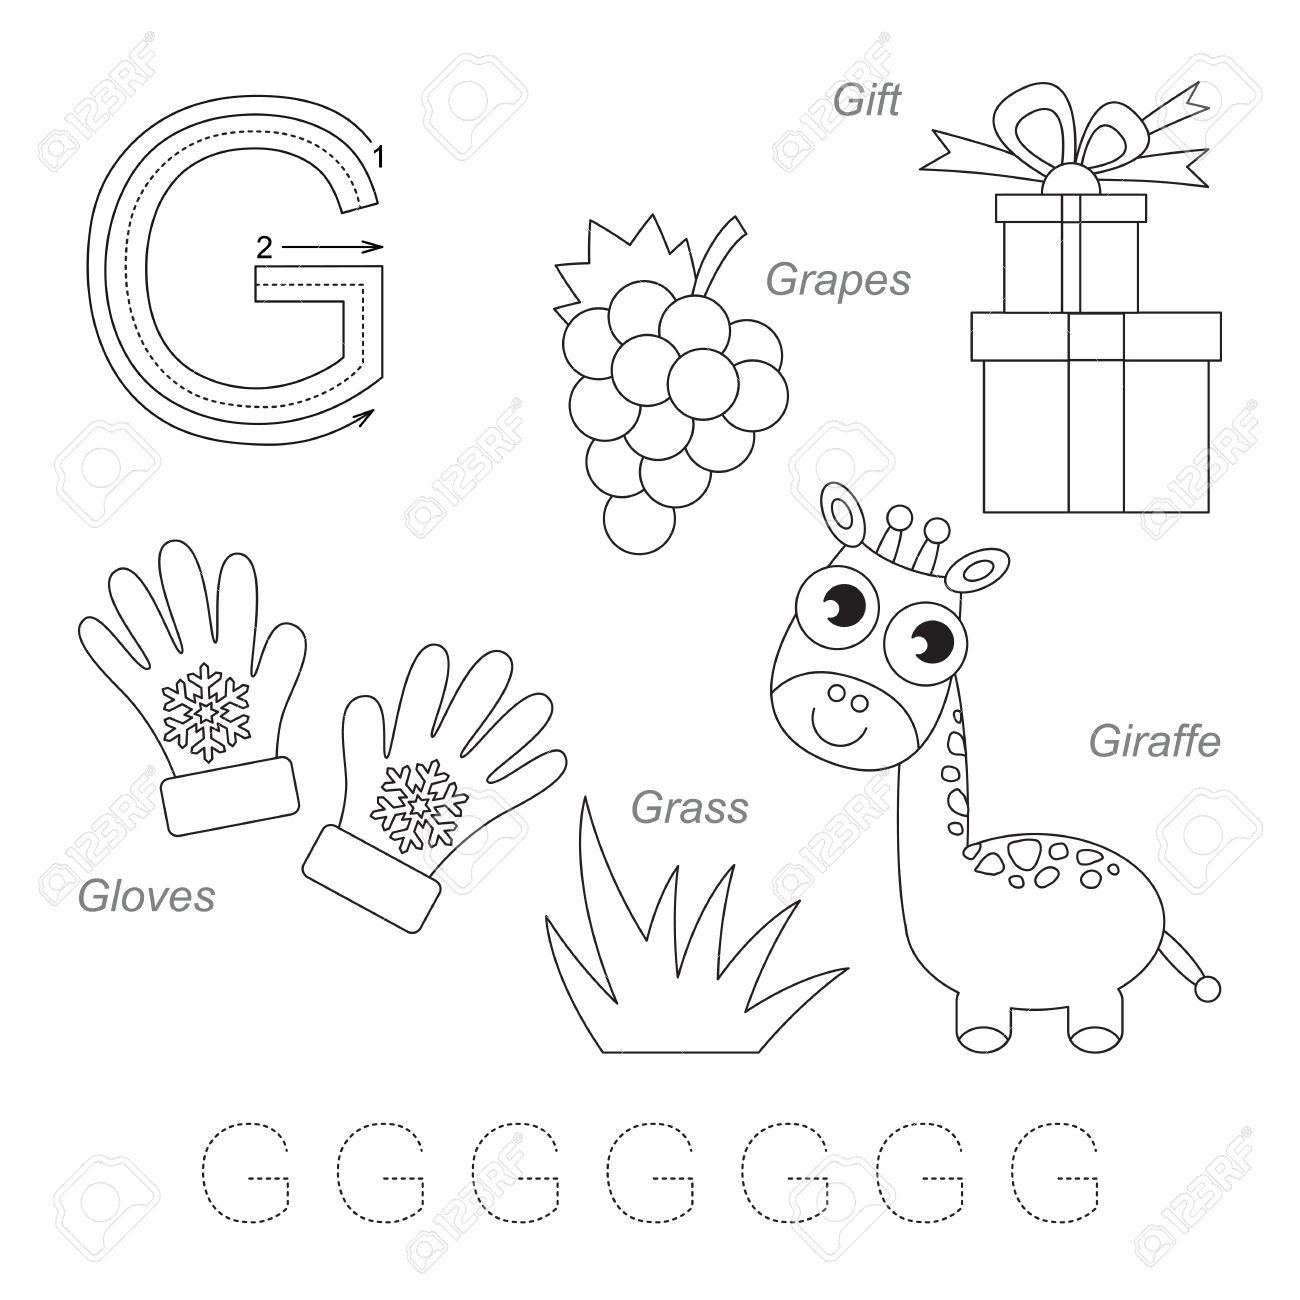 photo stock vector tracing worksheet for children full english alphabet from a to z pictures for letter g the colorless